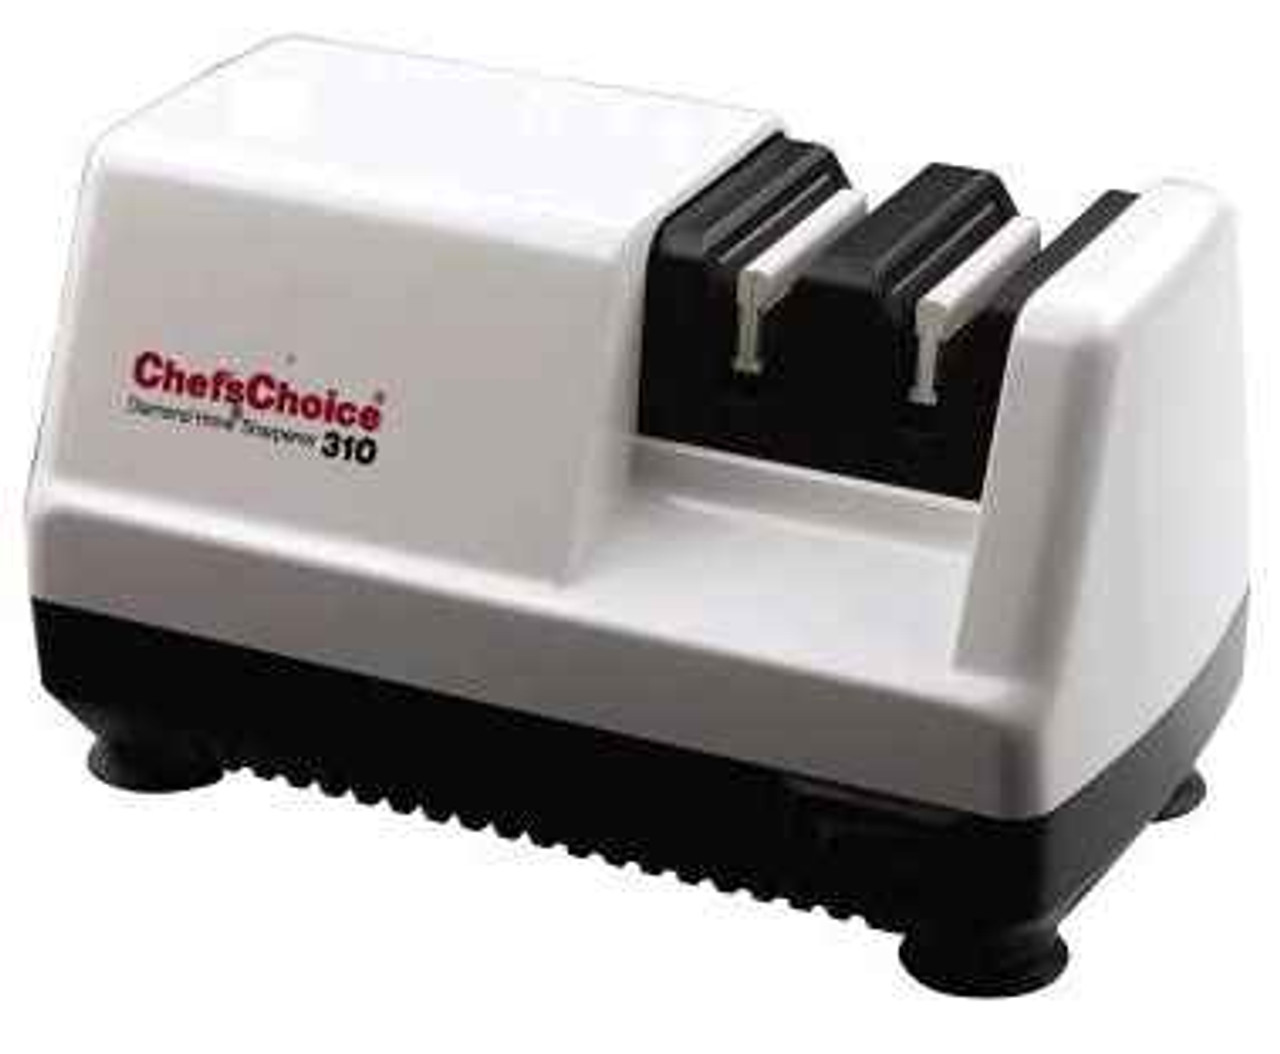 Chef's Choice 310W Electric Diamond Hone Two Stage Sharpener, White